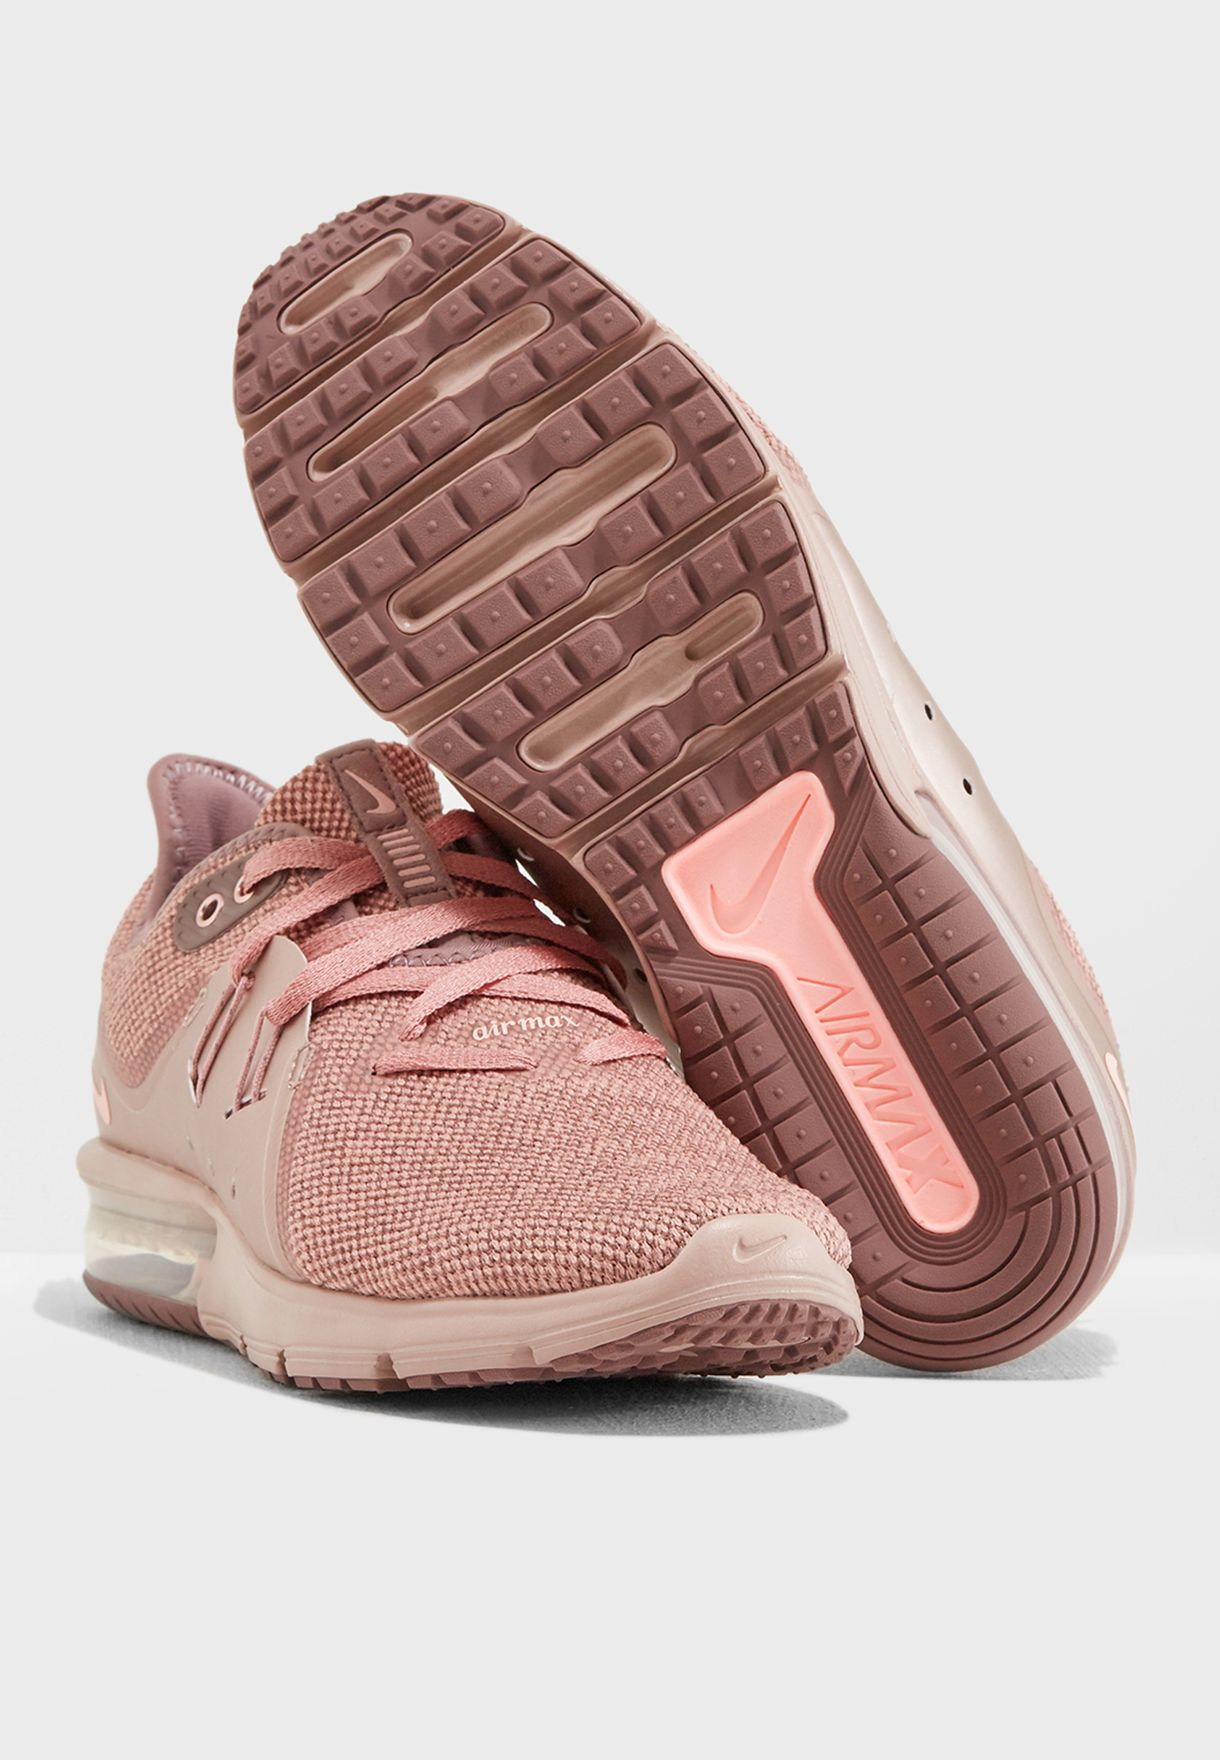 Nike Air Max Sequent 3 Premium AS Casual Women/'s Running Shoe Pink AR0256 600